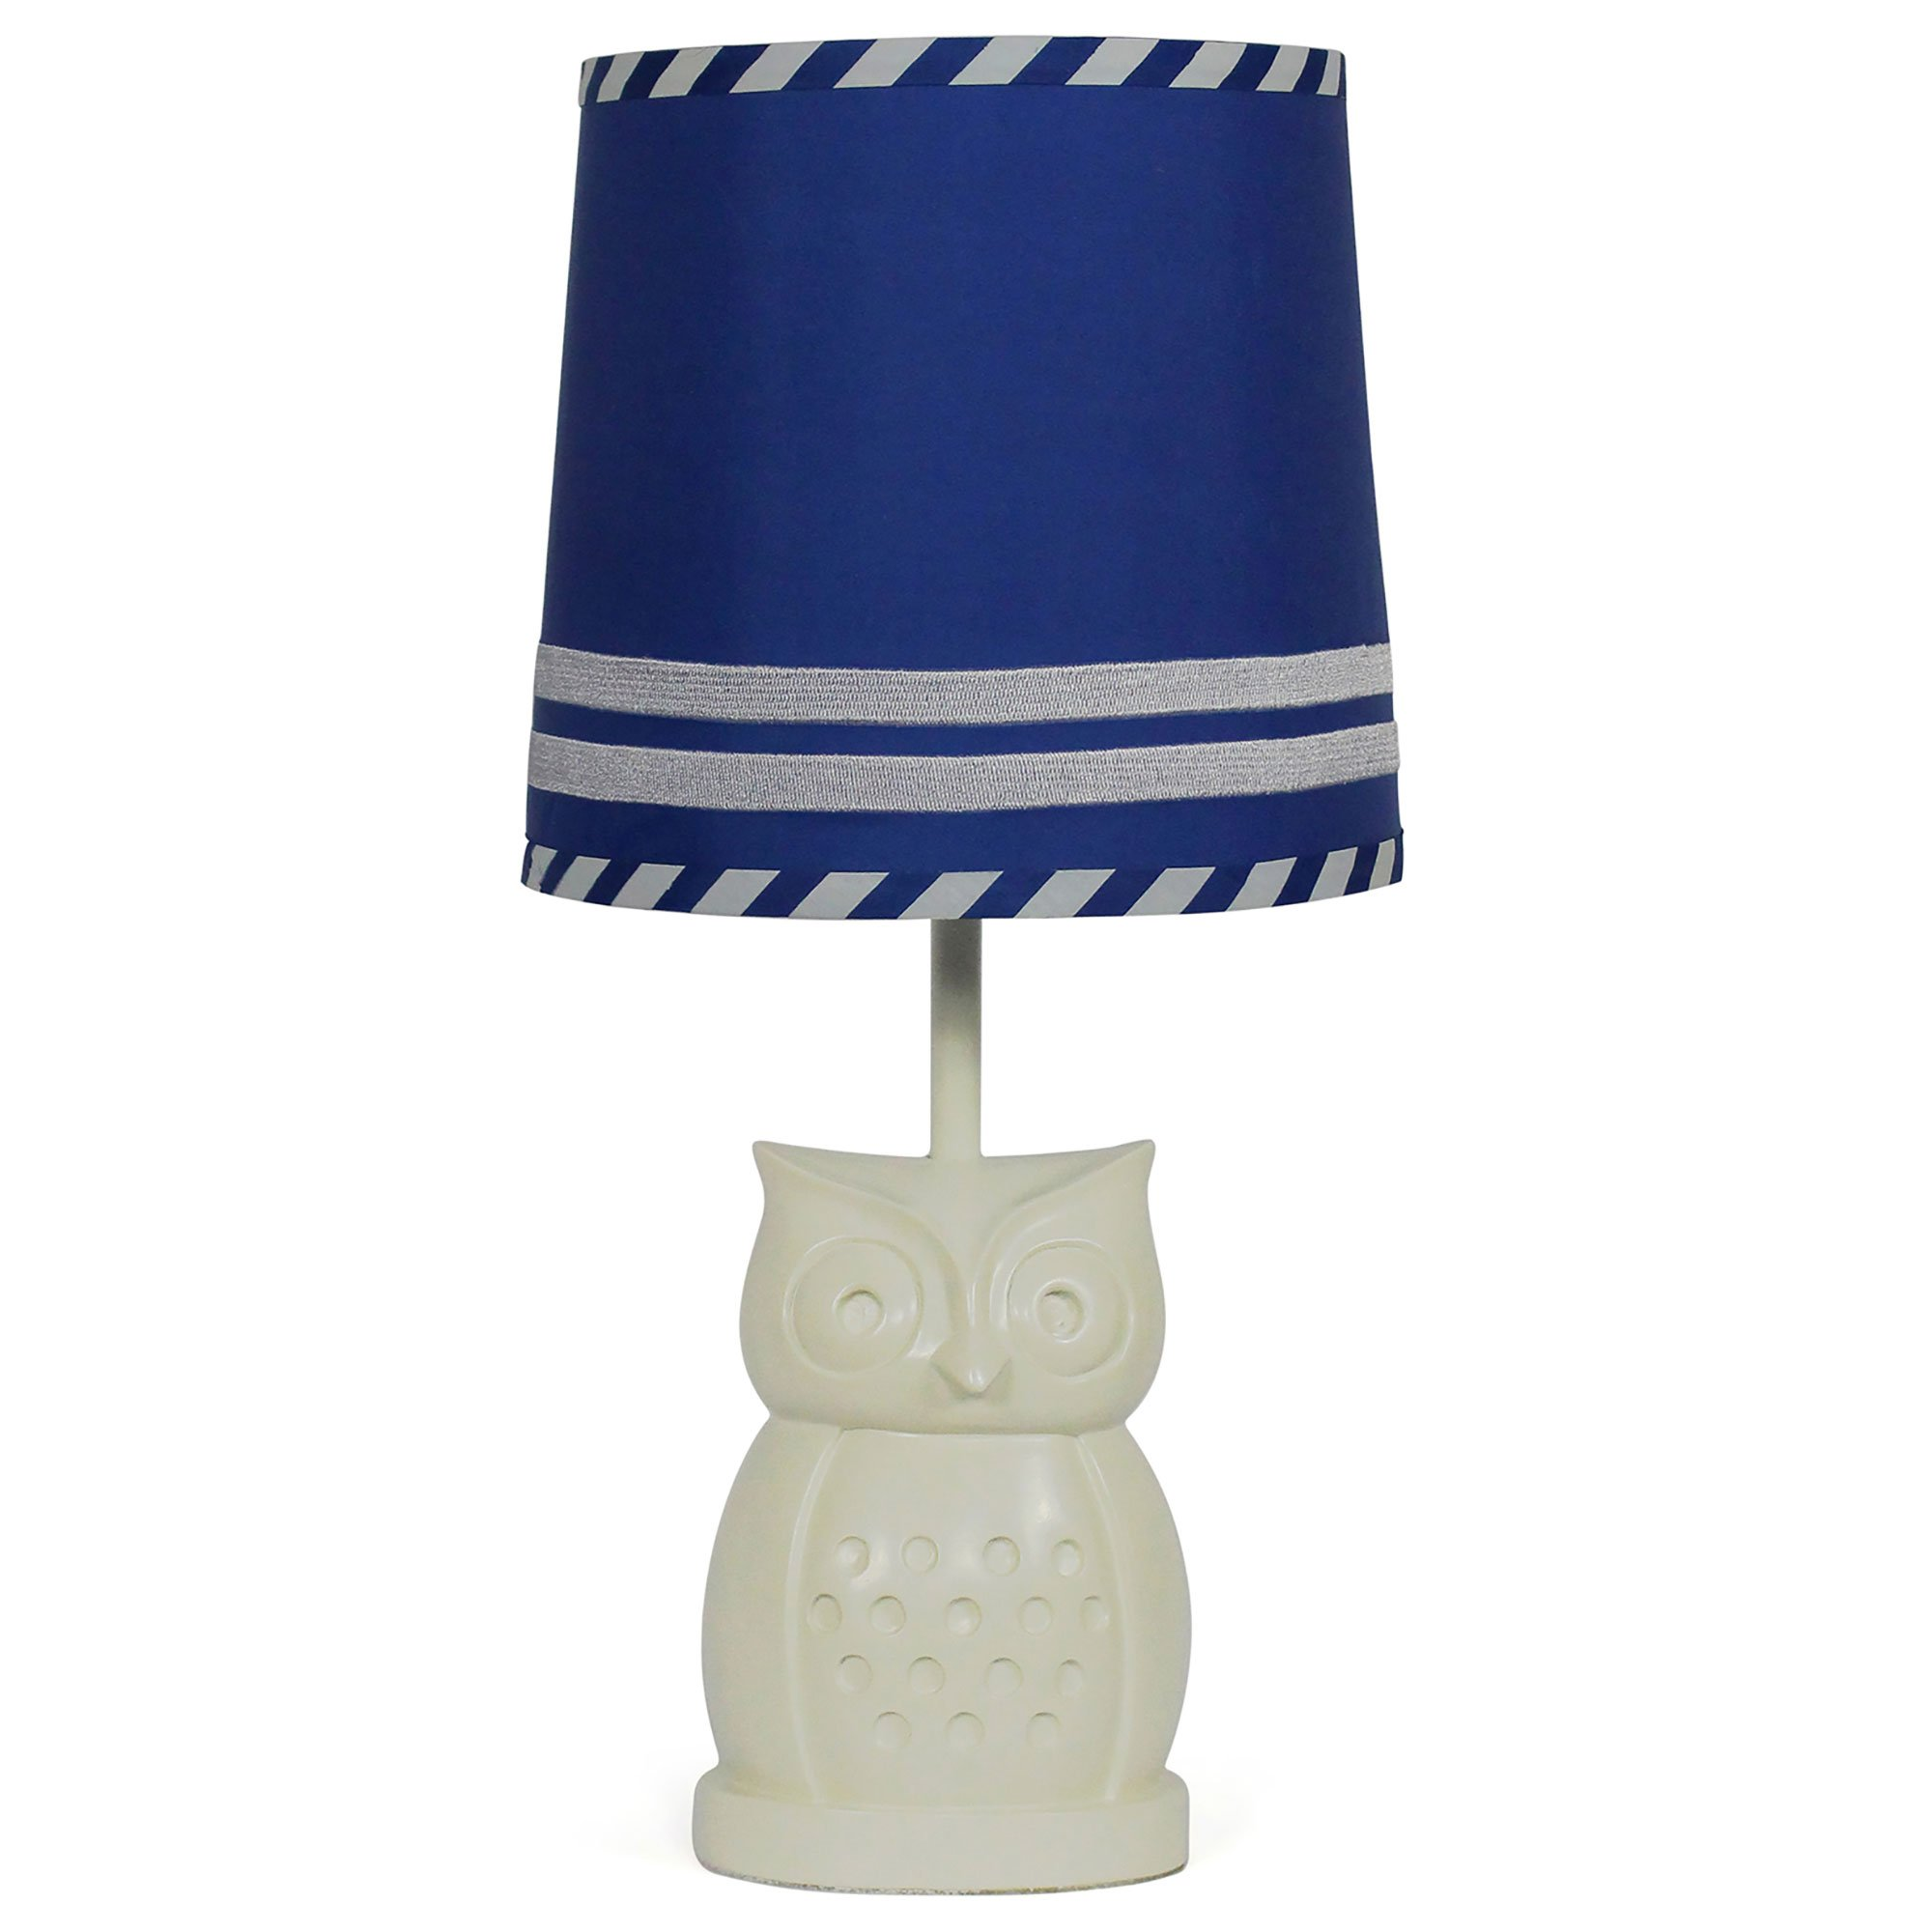 Royal Blue Nursery Lamp Shade with White Owl Base, CFL Bulb Included